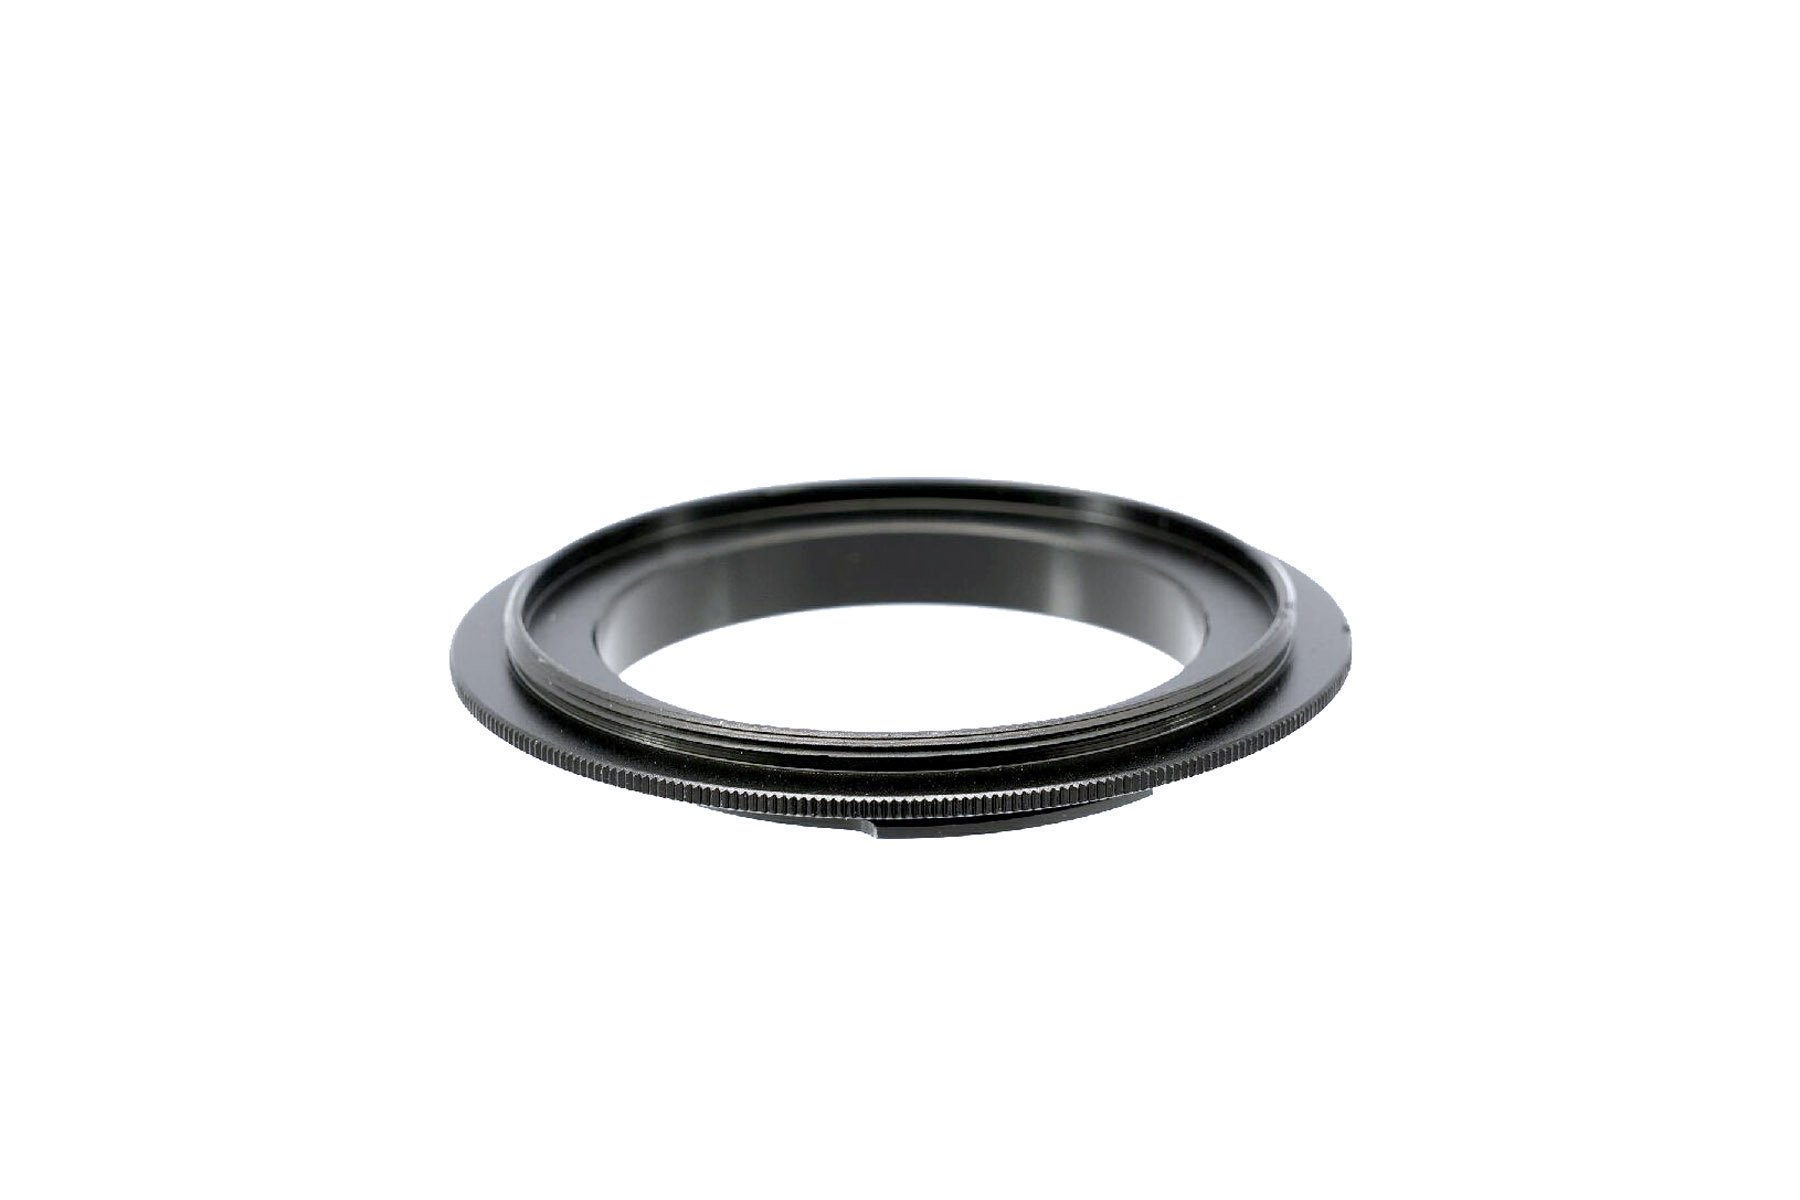 Photo Plus Pentax K-m to 52mm Reverse Mount Adapter by Photo Plus